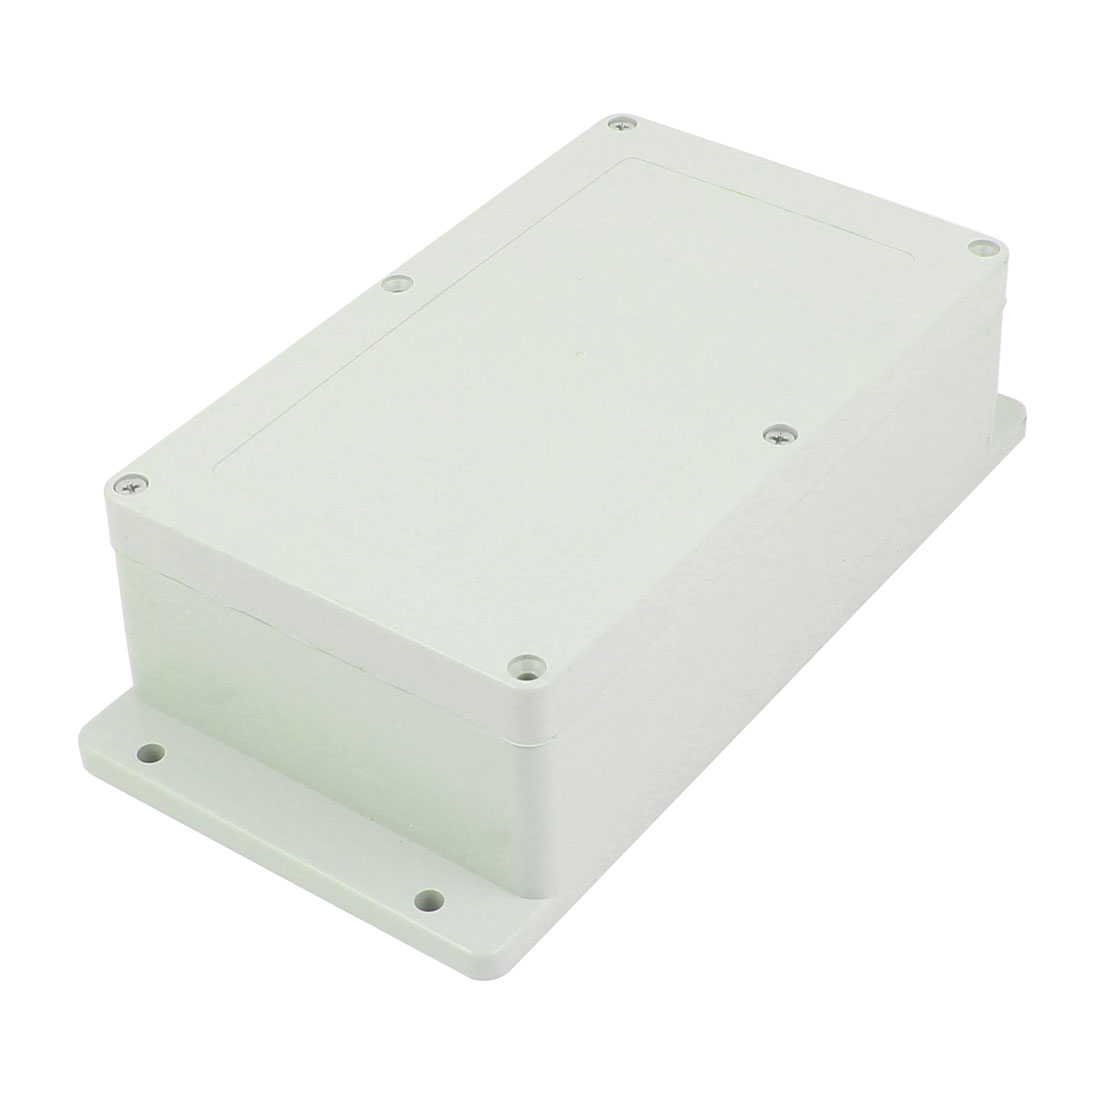 Dustproof IP65 Junction Box Case DIY Terminal Connect Enclosure Adaptable 192mm x 112mm x 59mm